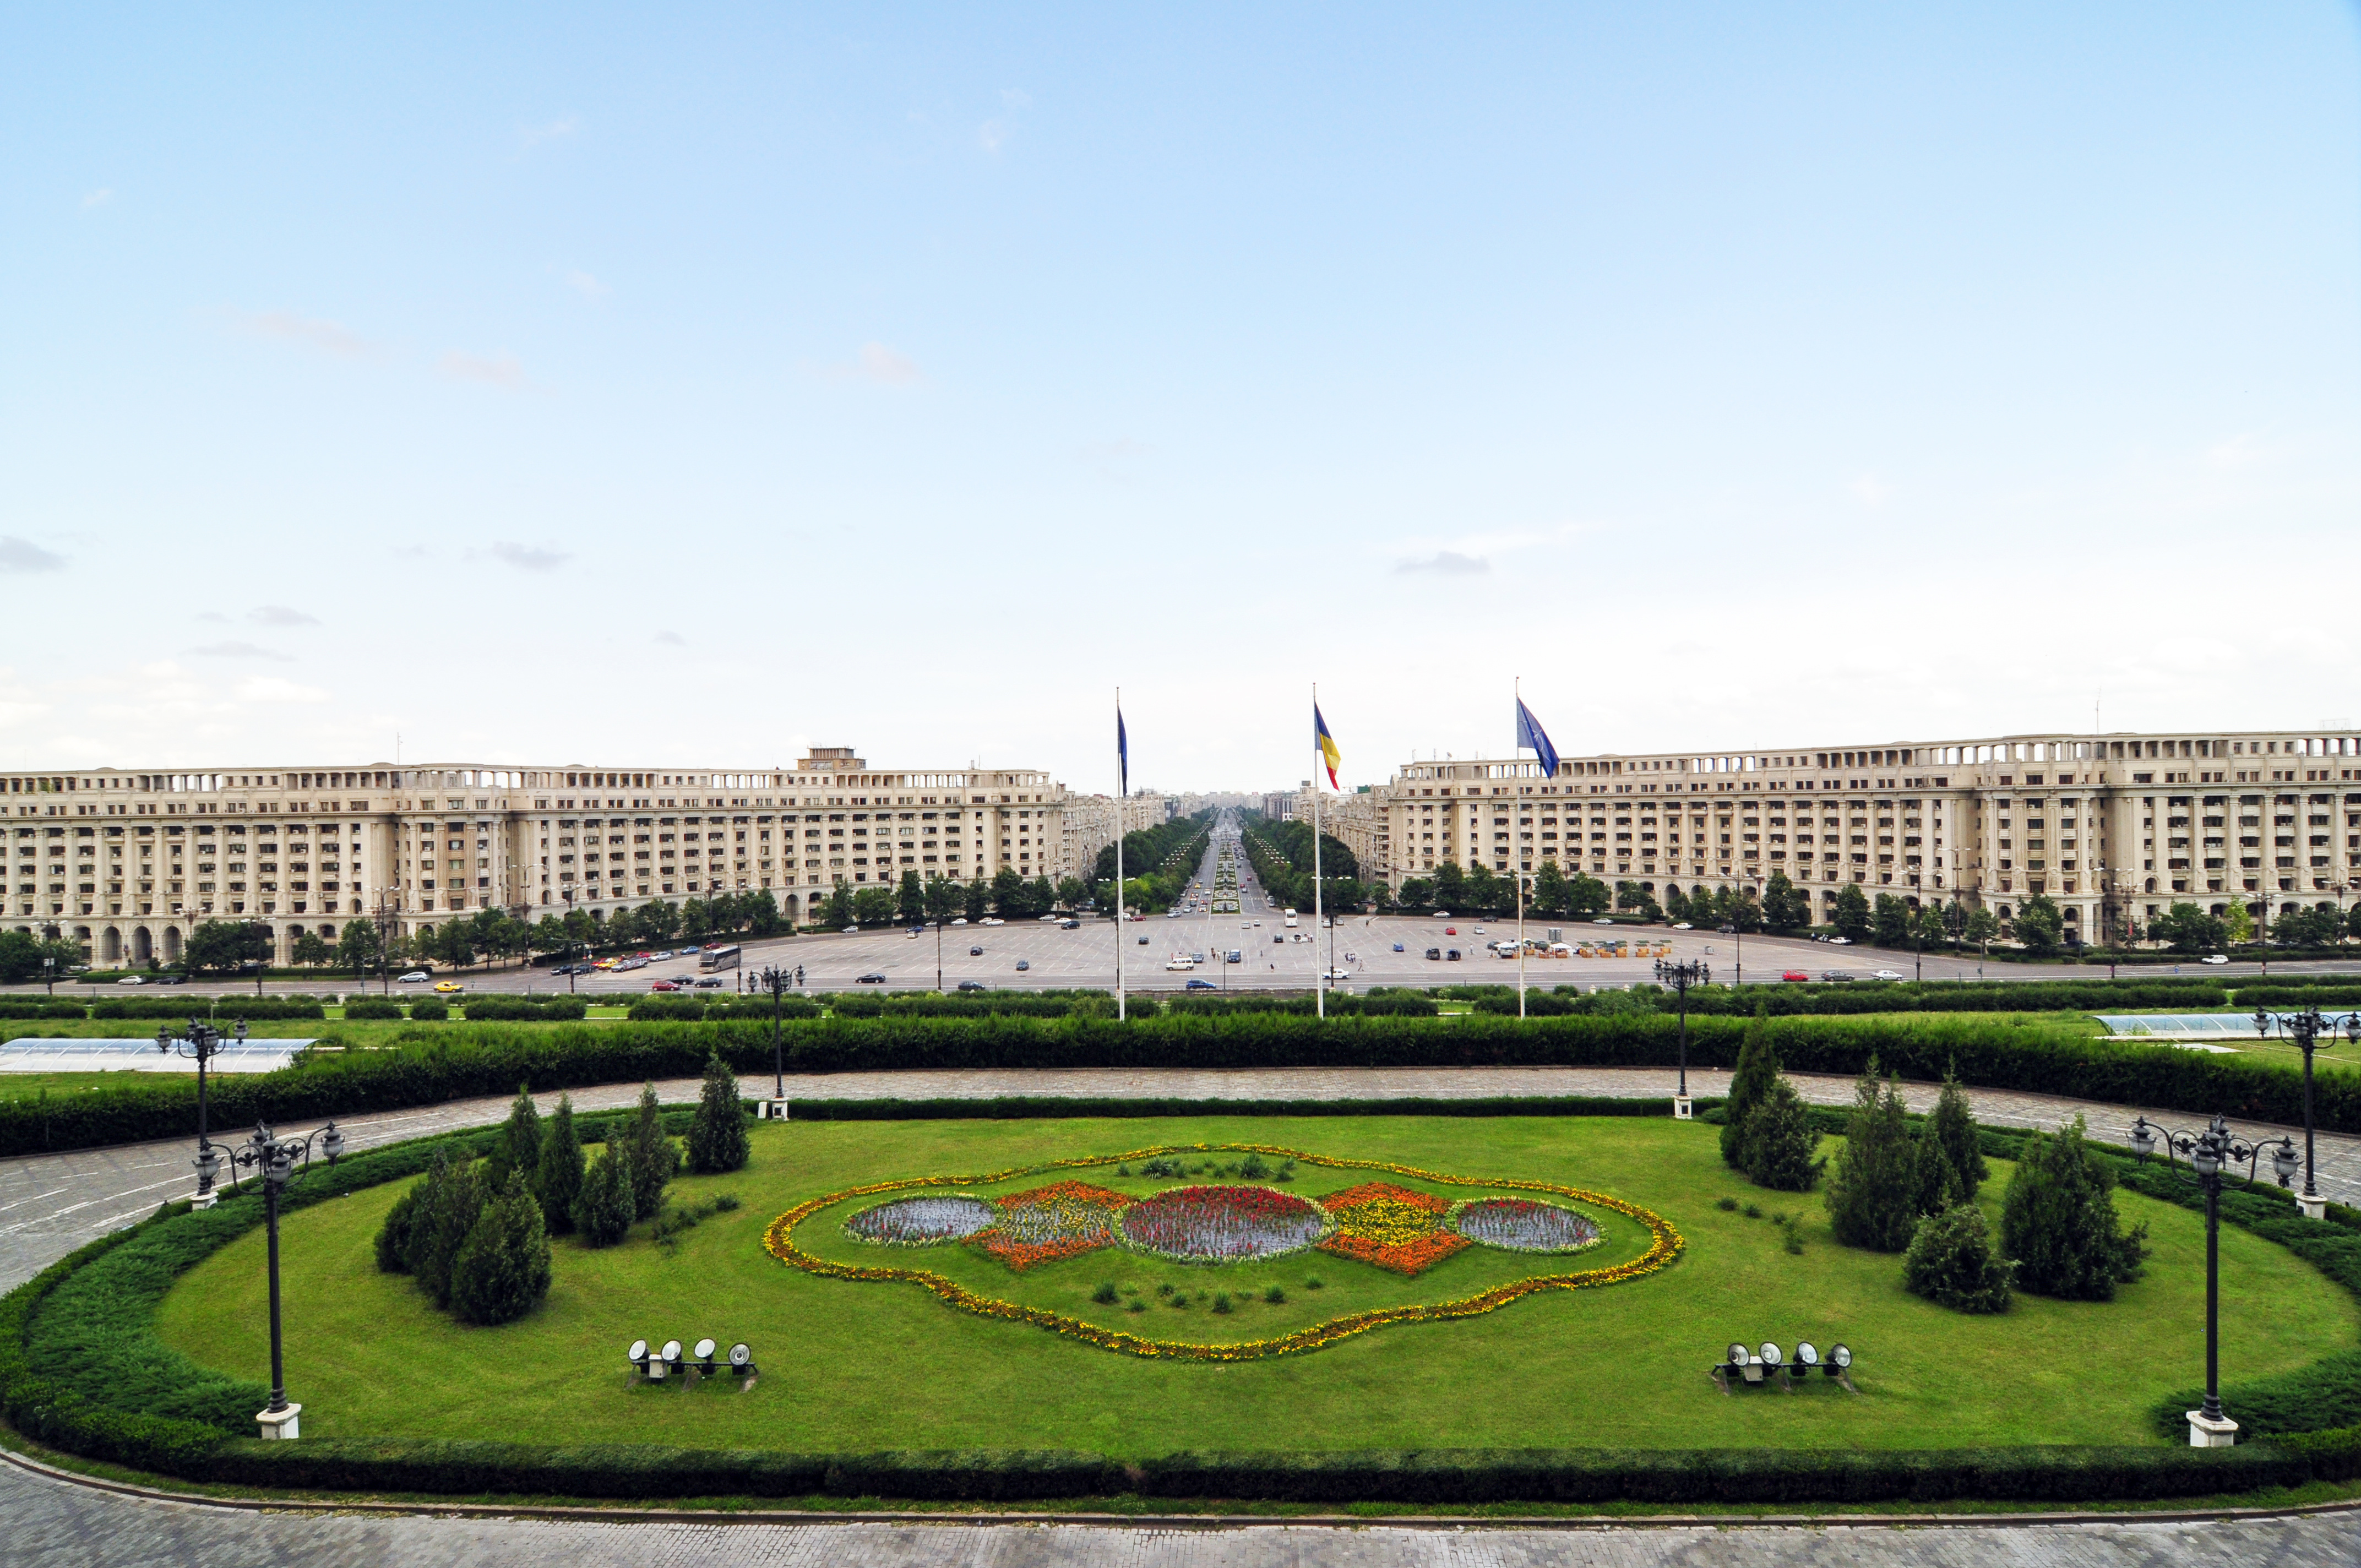 Romania: Fiscal policy headaches after growth binge